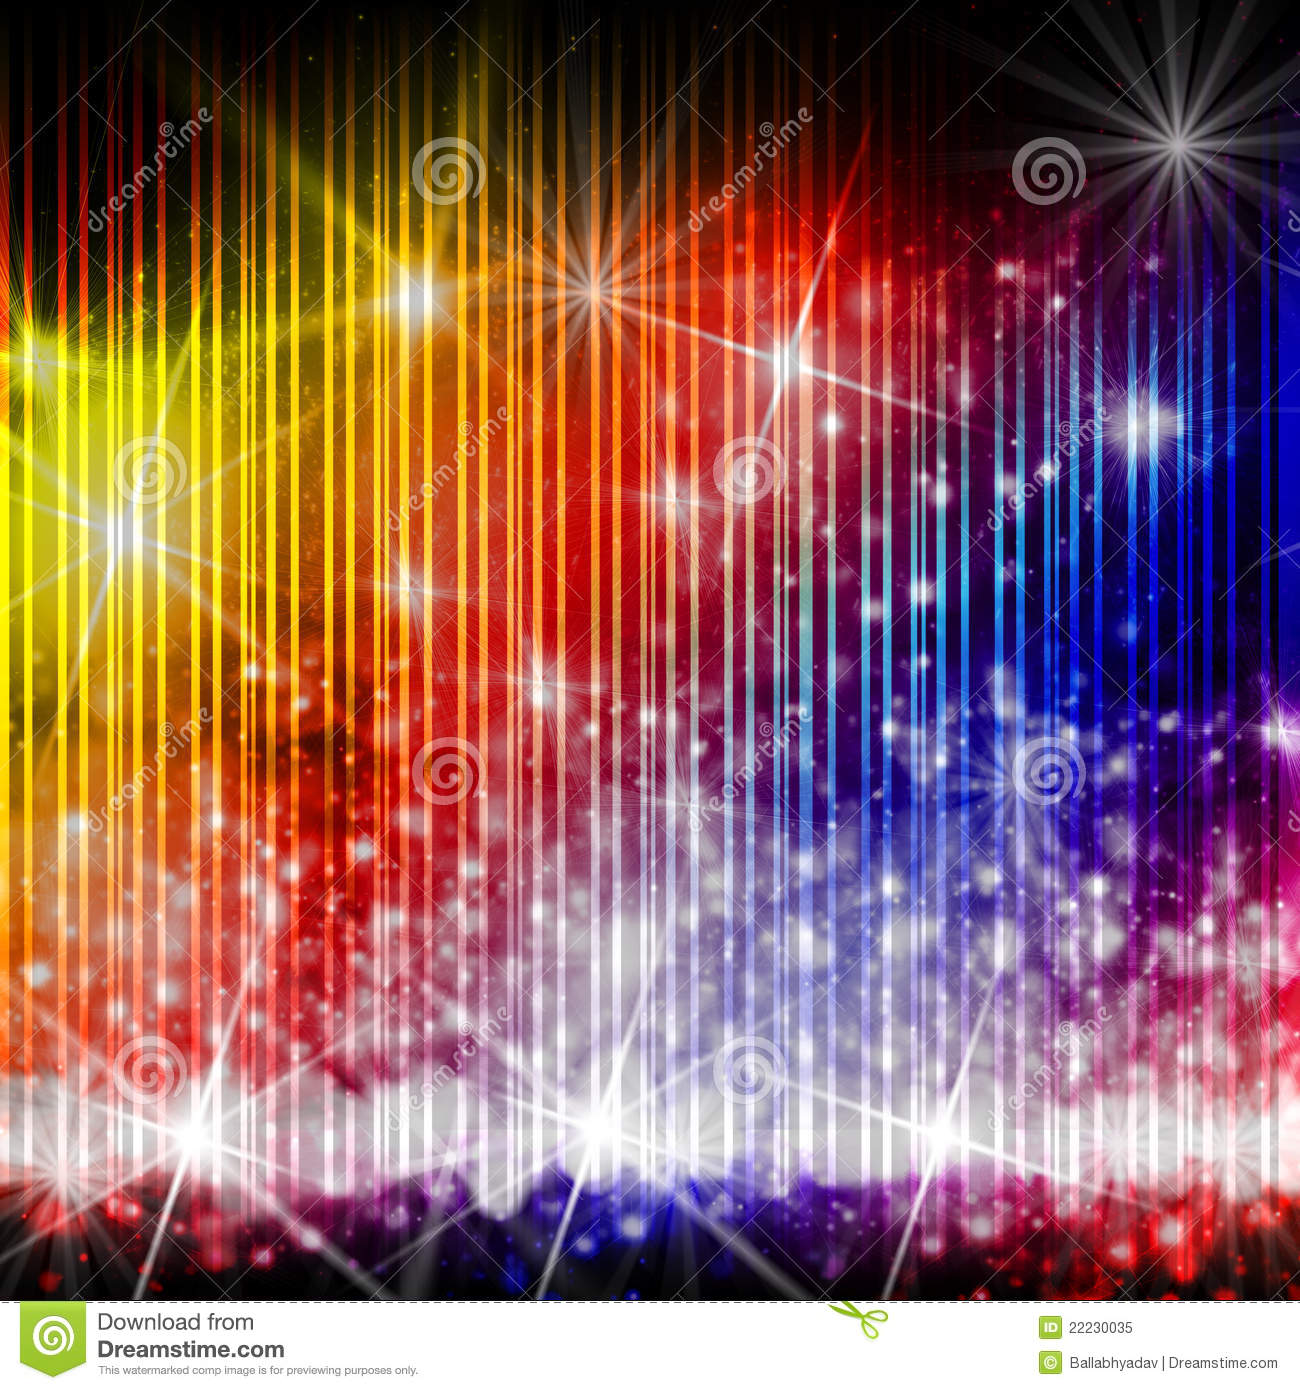 Party Background Lights Royalty Free Stock Photo - Image ...